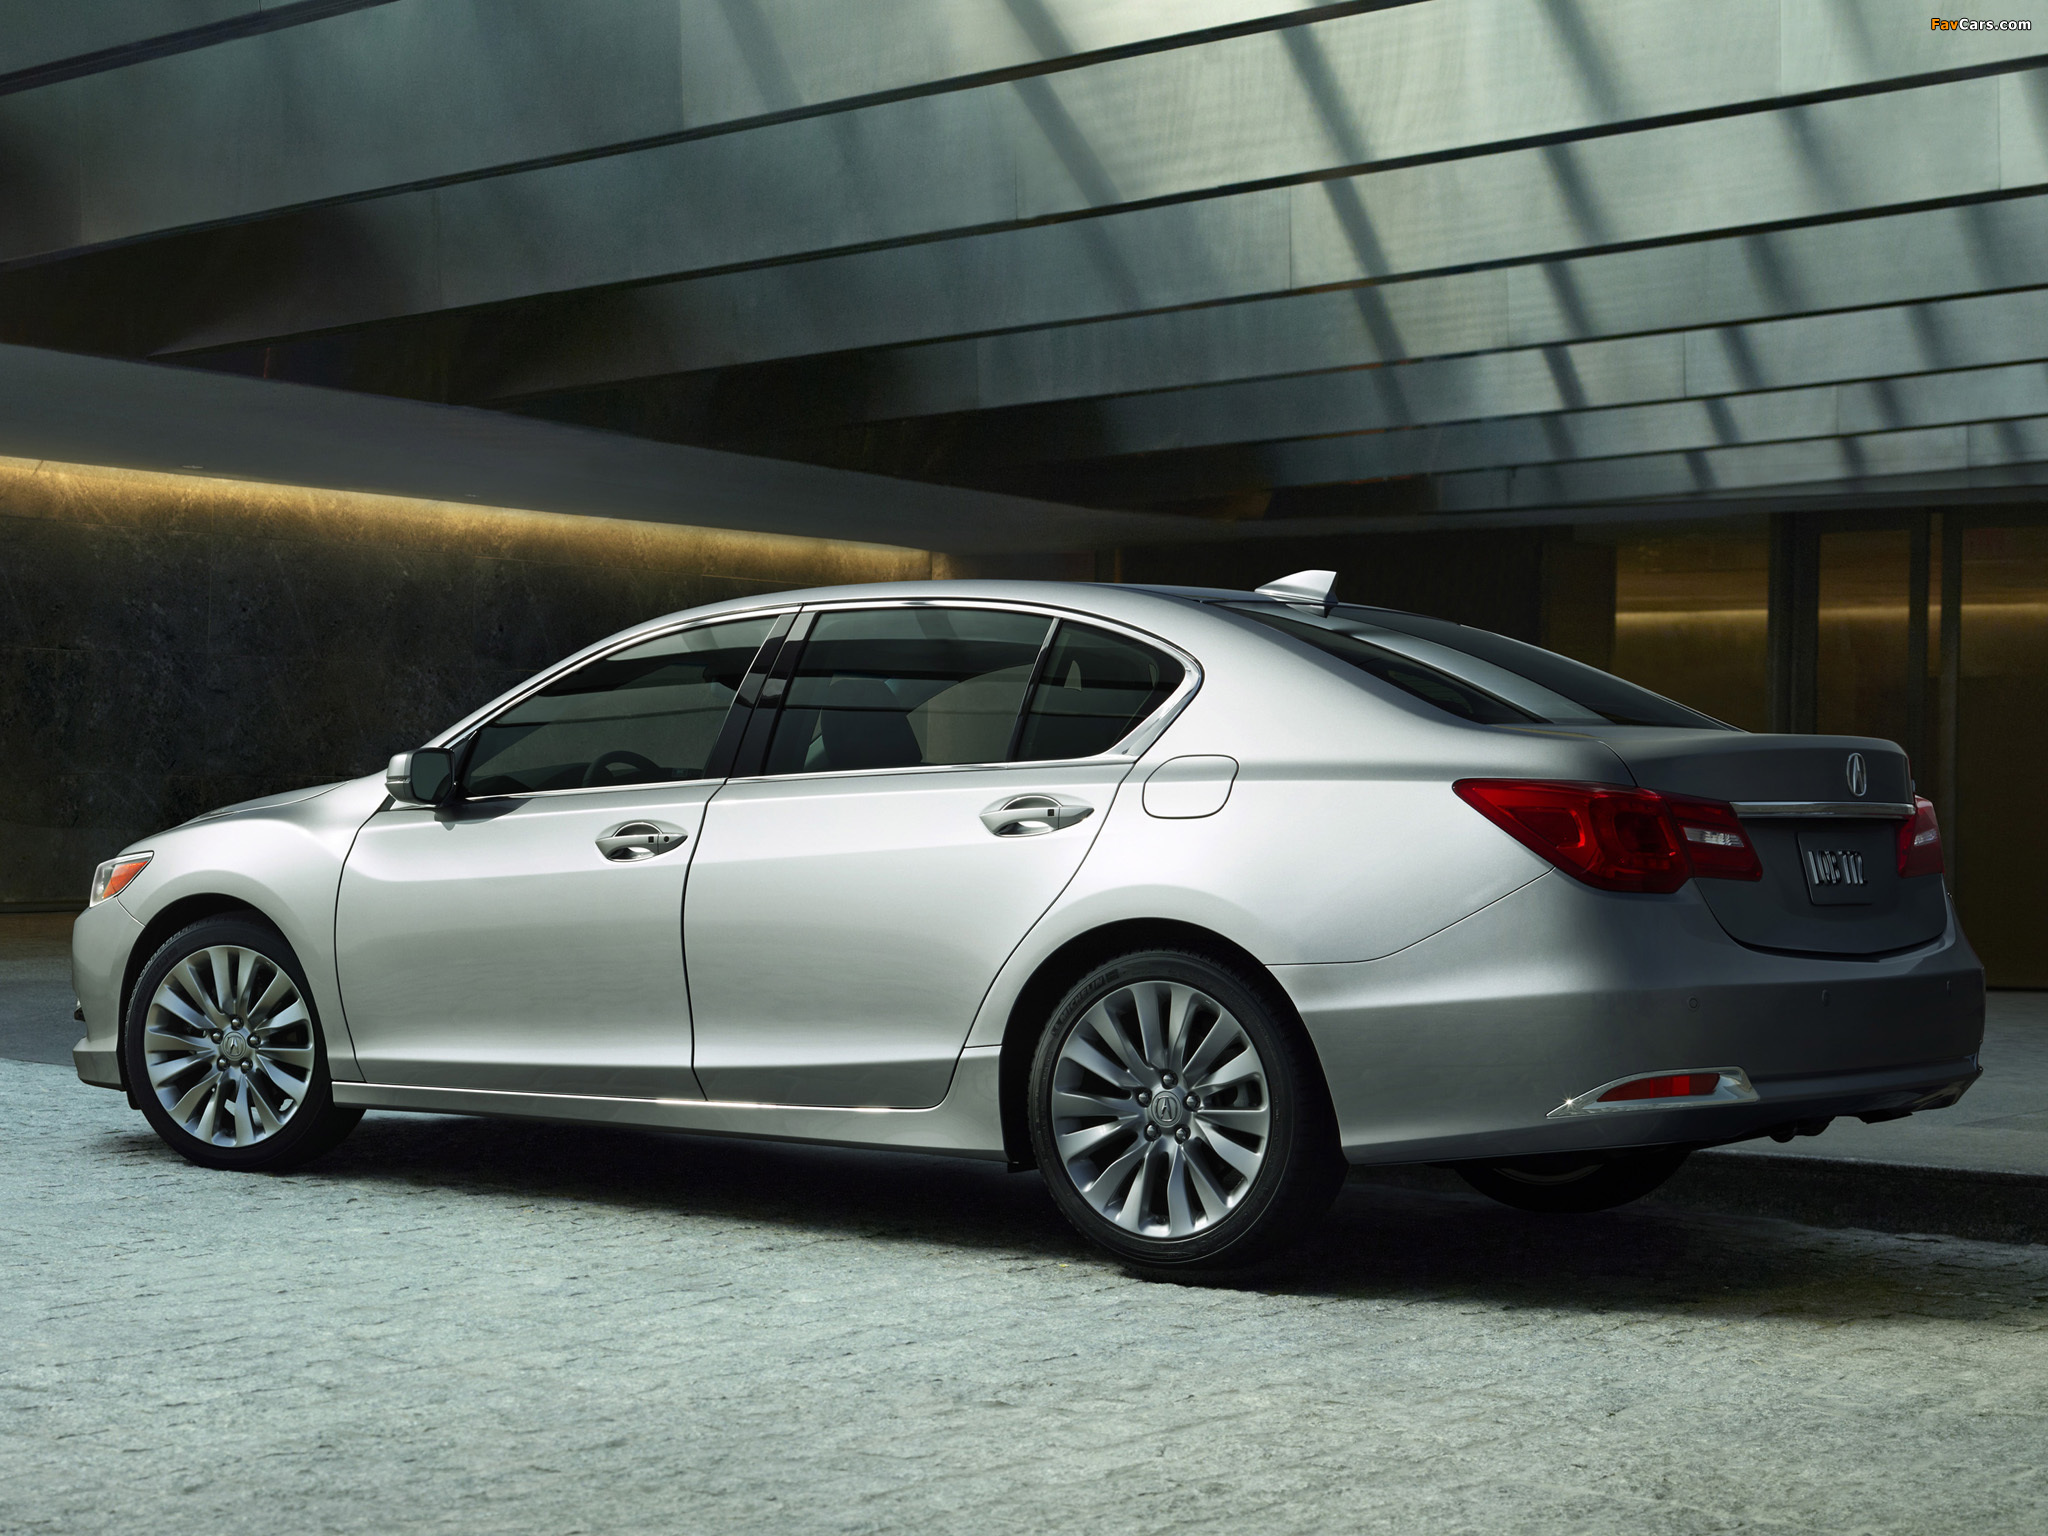 Acura RLX (2013) wallpapers (2048 x 1536)